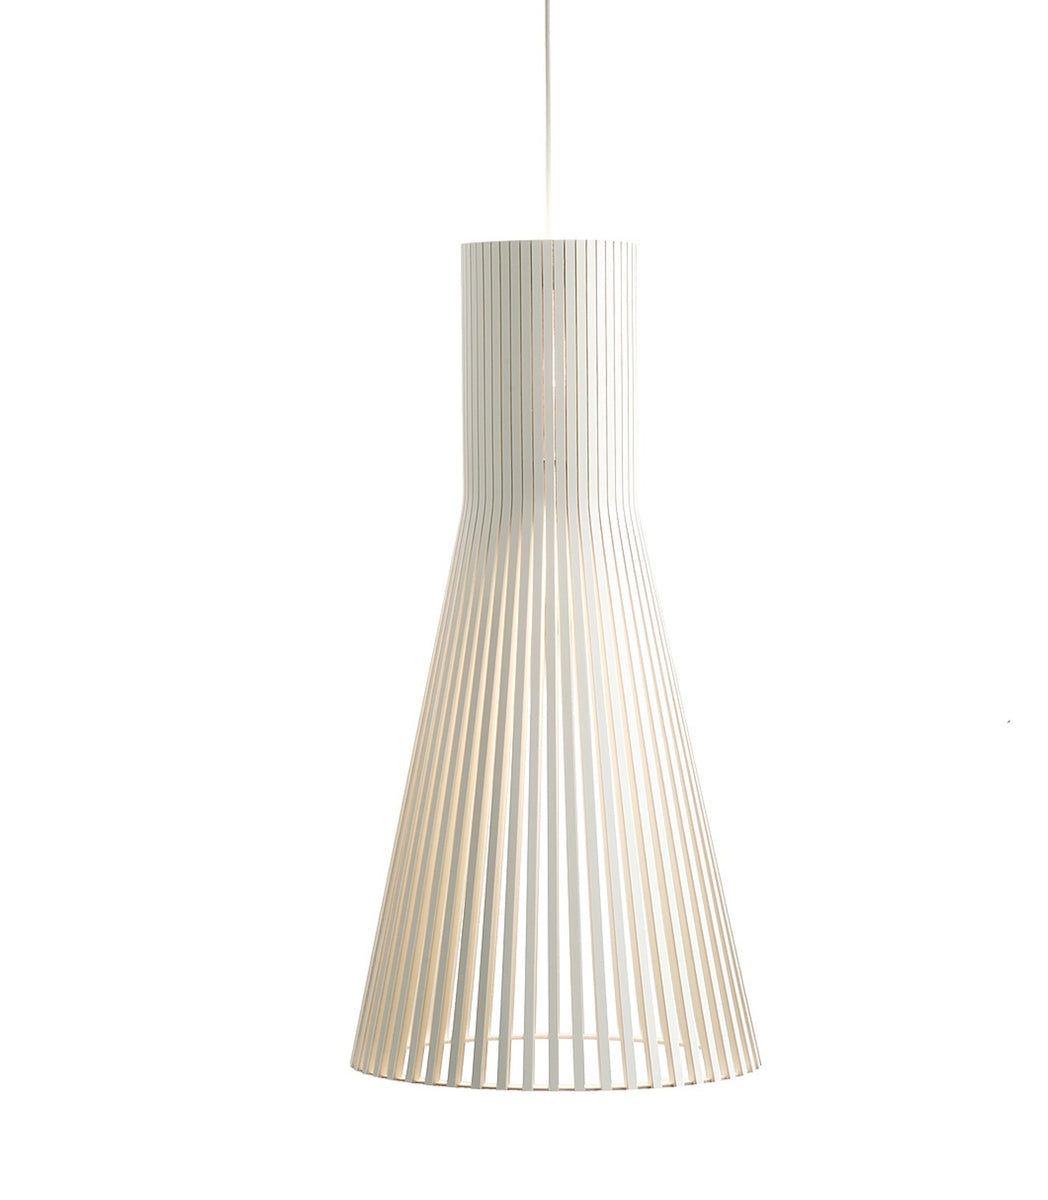 Secto pendant ceiling light Model 4200 White 1